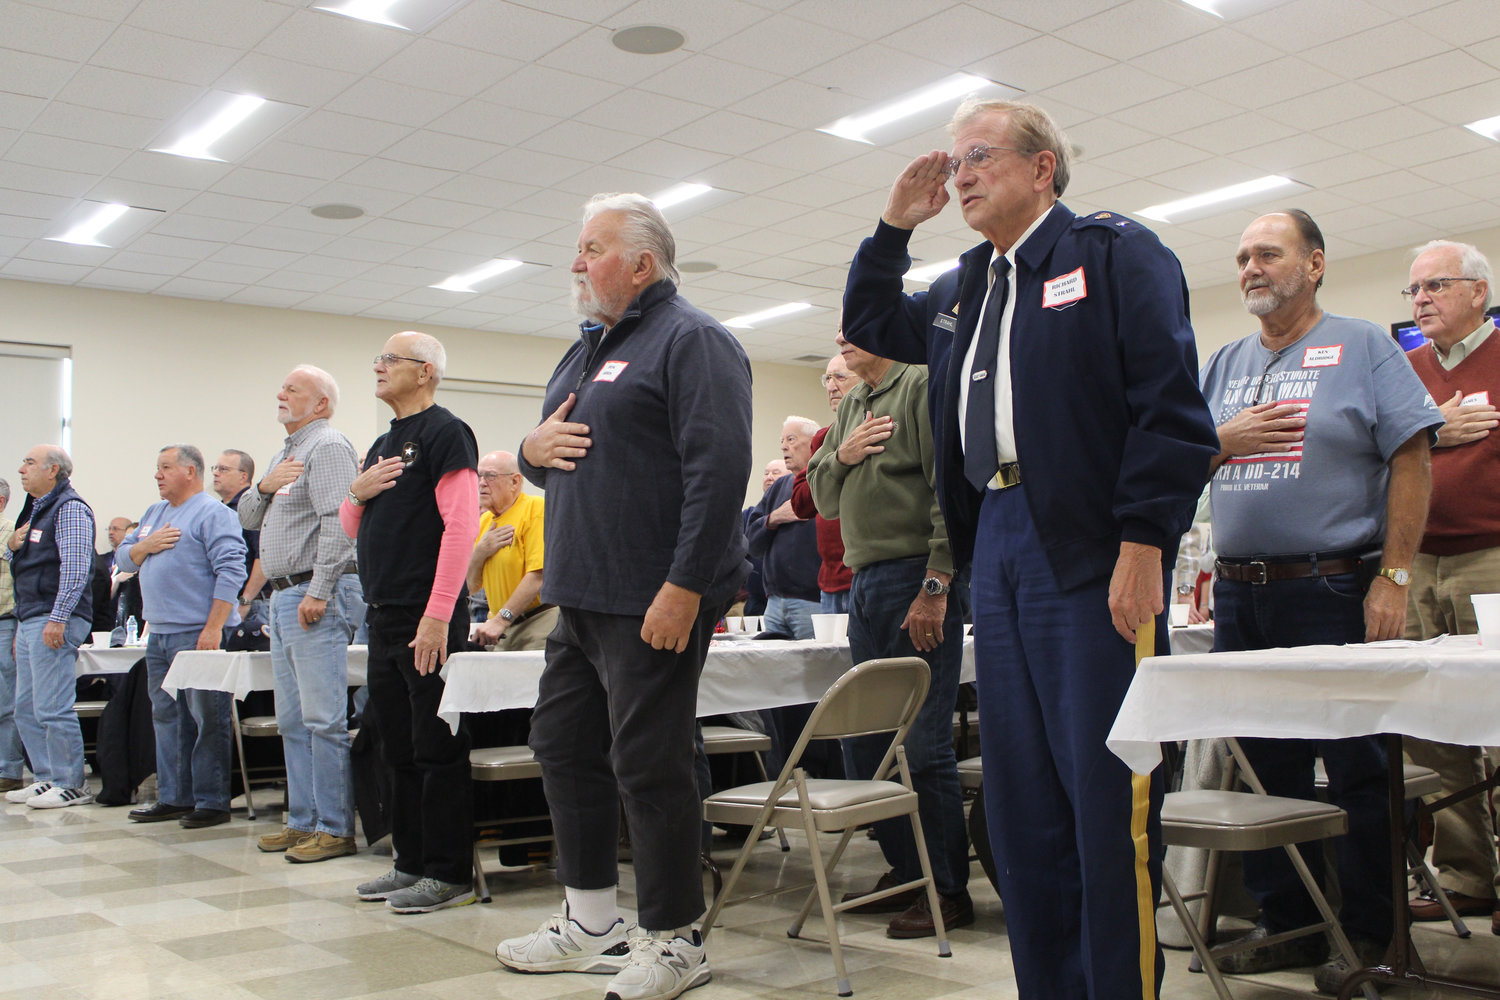 Army veteran Richard Strahl salutes the flag during the Pledge of Allegiance during Rep. Tom Mehaffie's Veterans Breakfast at the Lower Swatara Fire Hall Nov. 8.